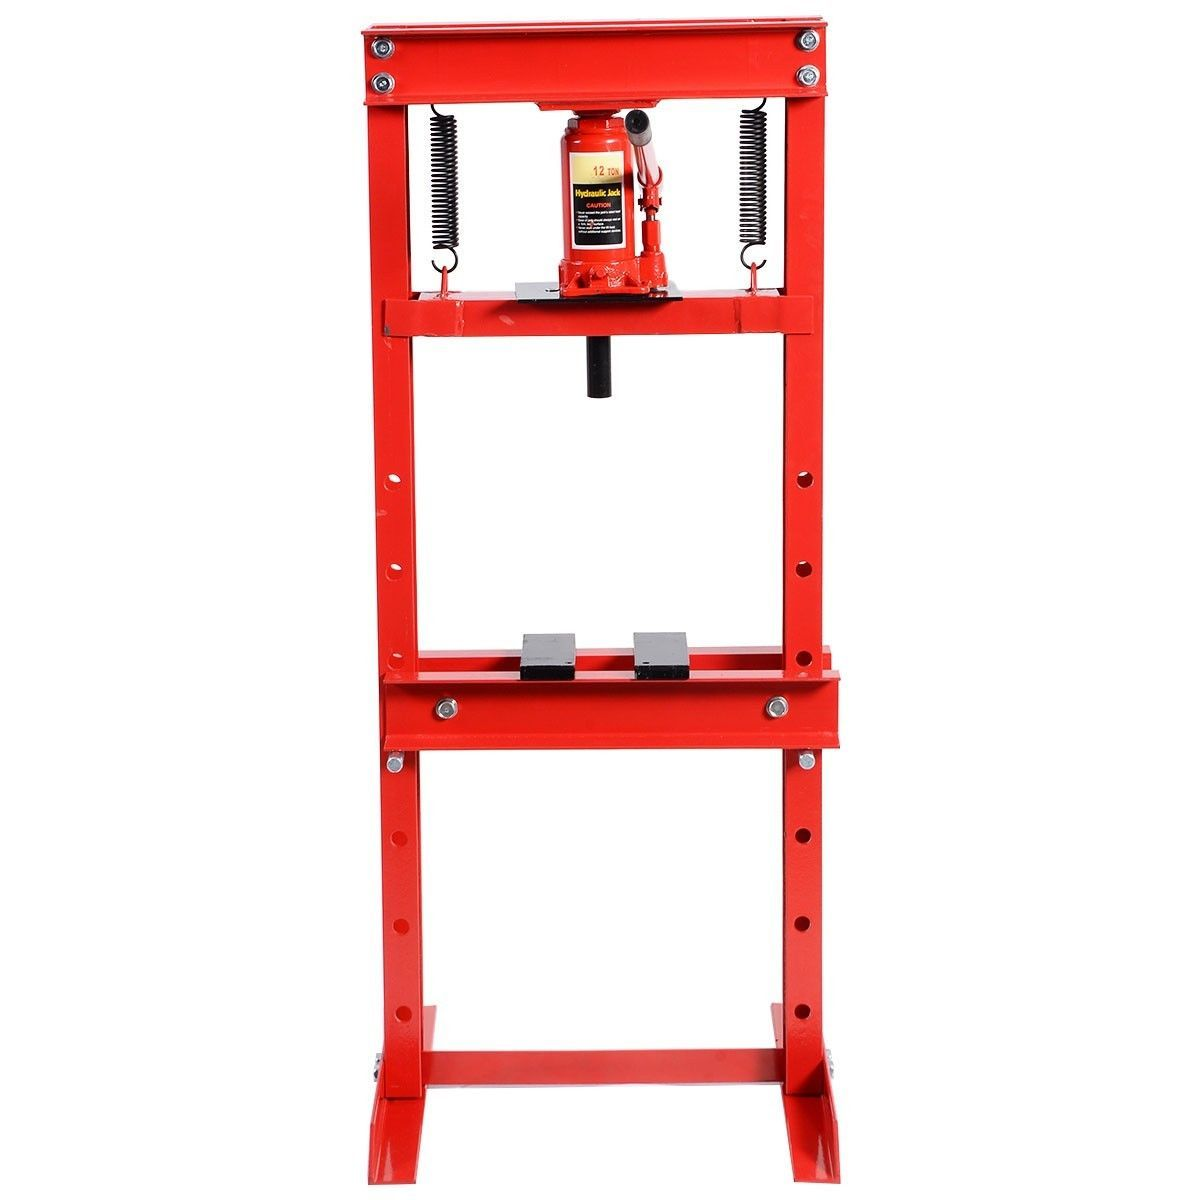 12 Ton H Frame Shop Press Hydraulic Jack Stand Frame Shop Shop Press Equipment For Sale